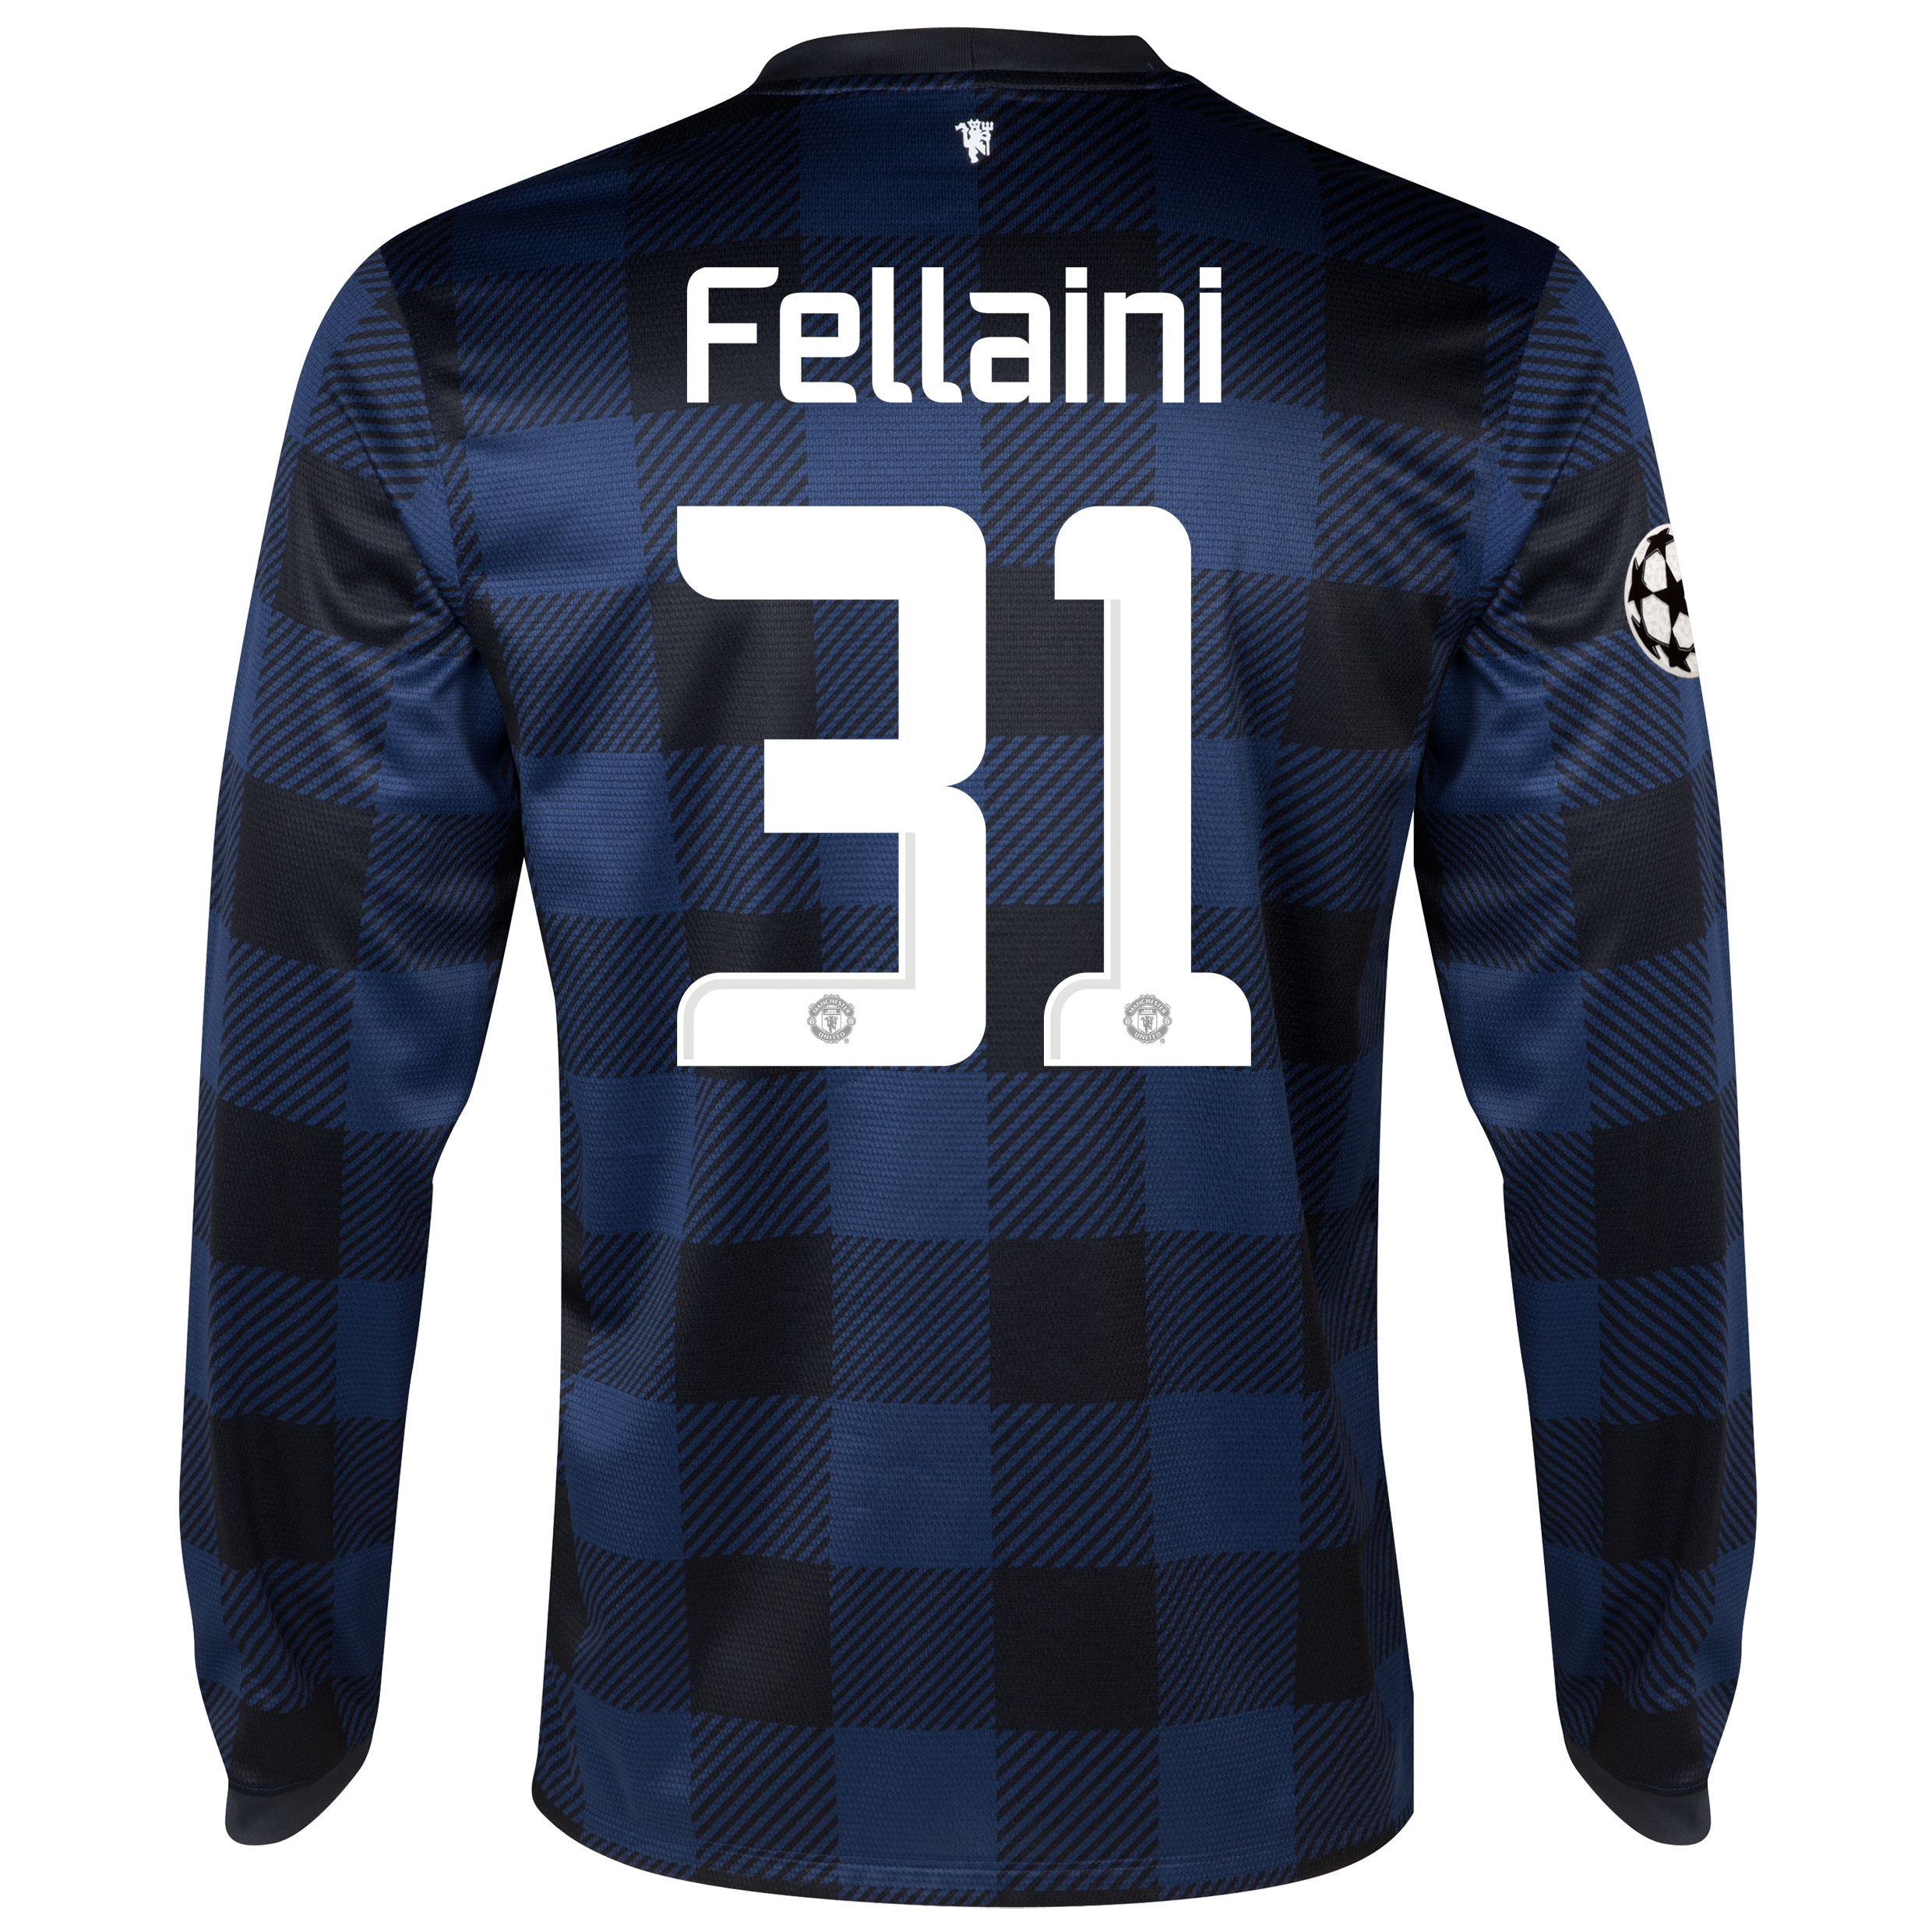 Manchester United UEFA Champions League Away Shirt 2013/14 - Long Sleeved with Fellaini 31 printing